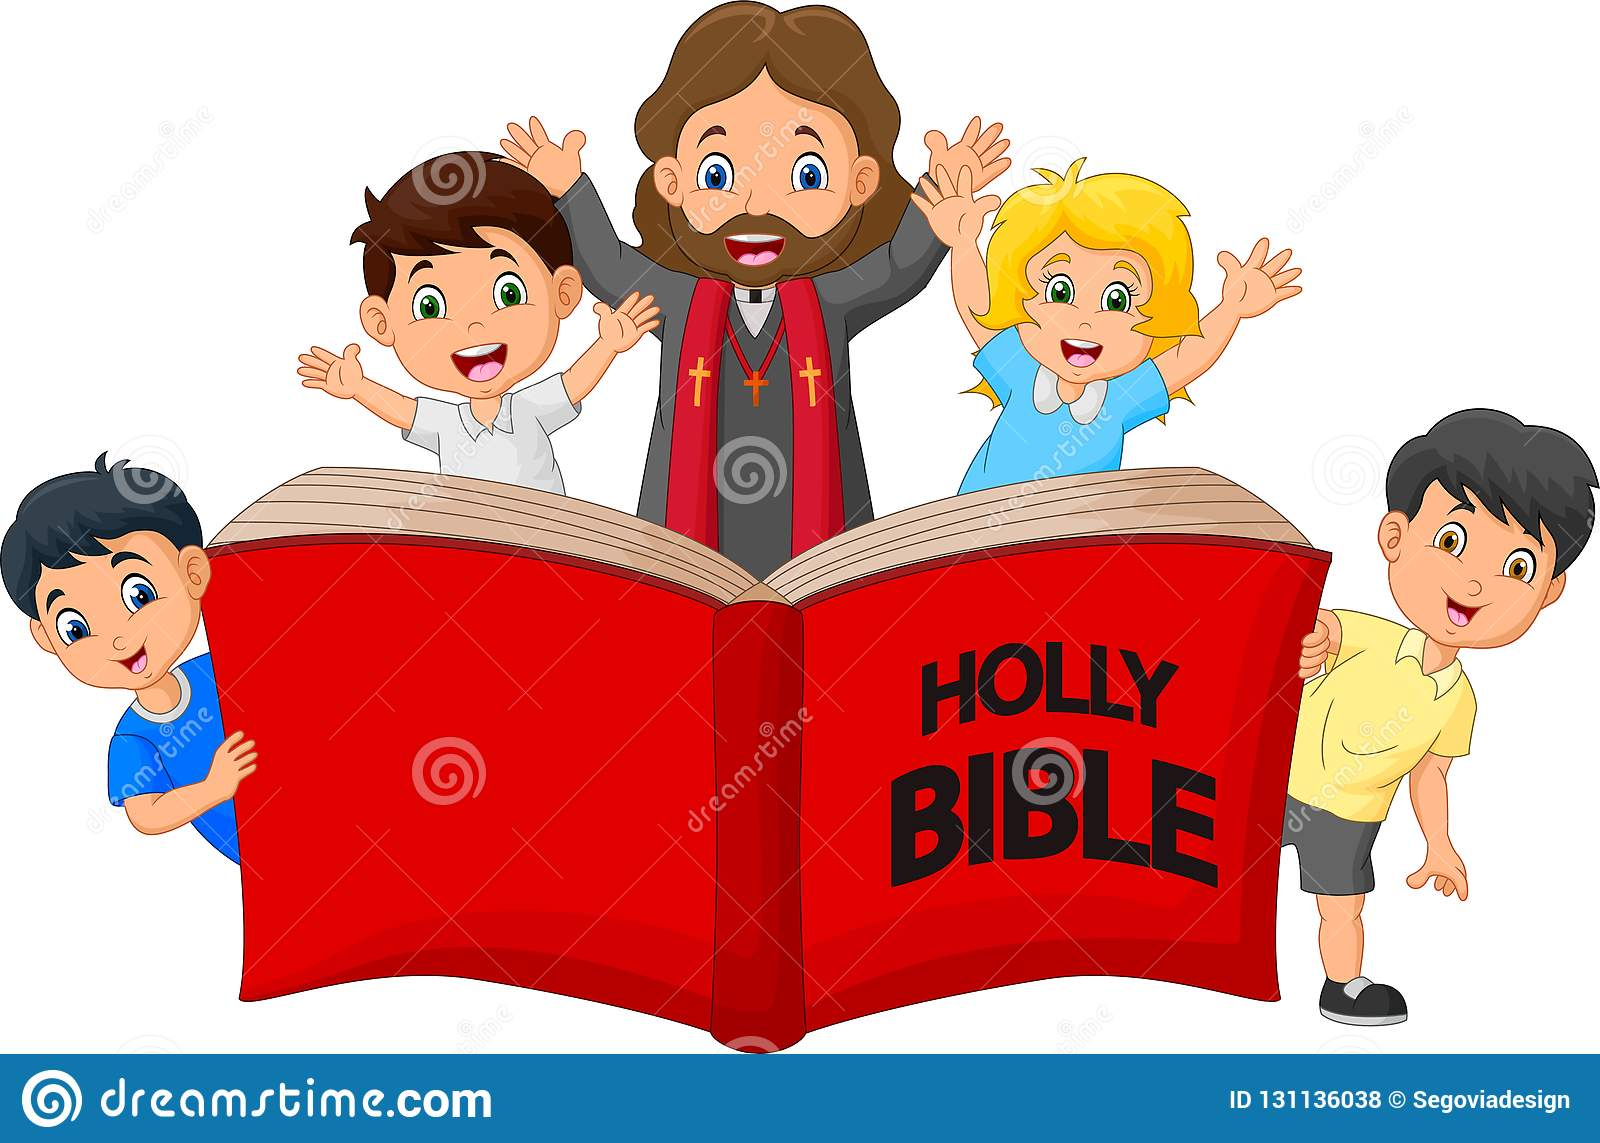 Kids Bible Stock Illustrations 584 Kids Bible Stock Illustrations Vectors Clipart Dreamstime